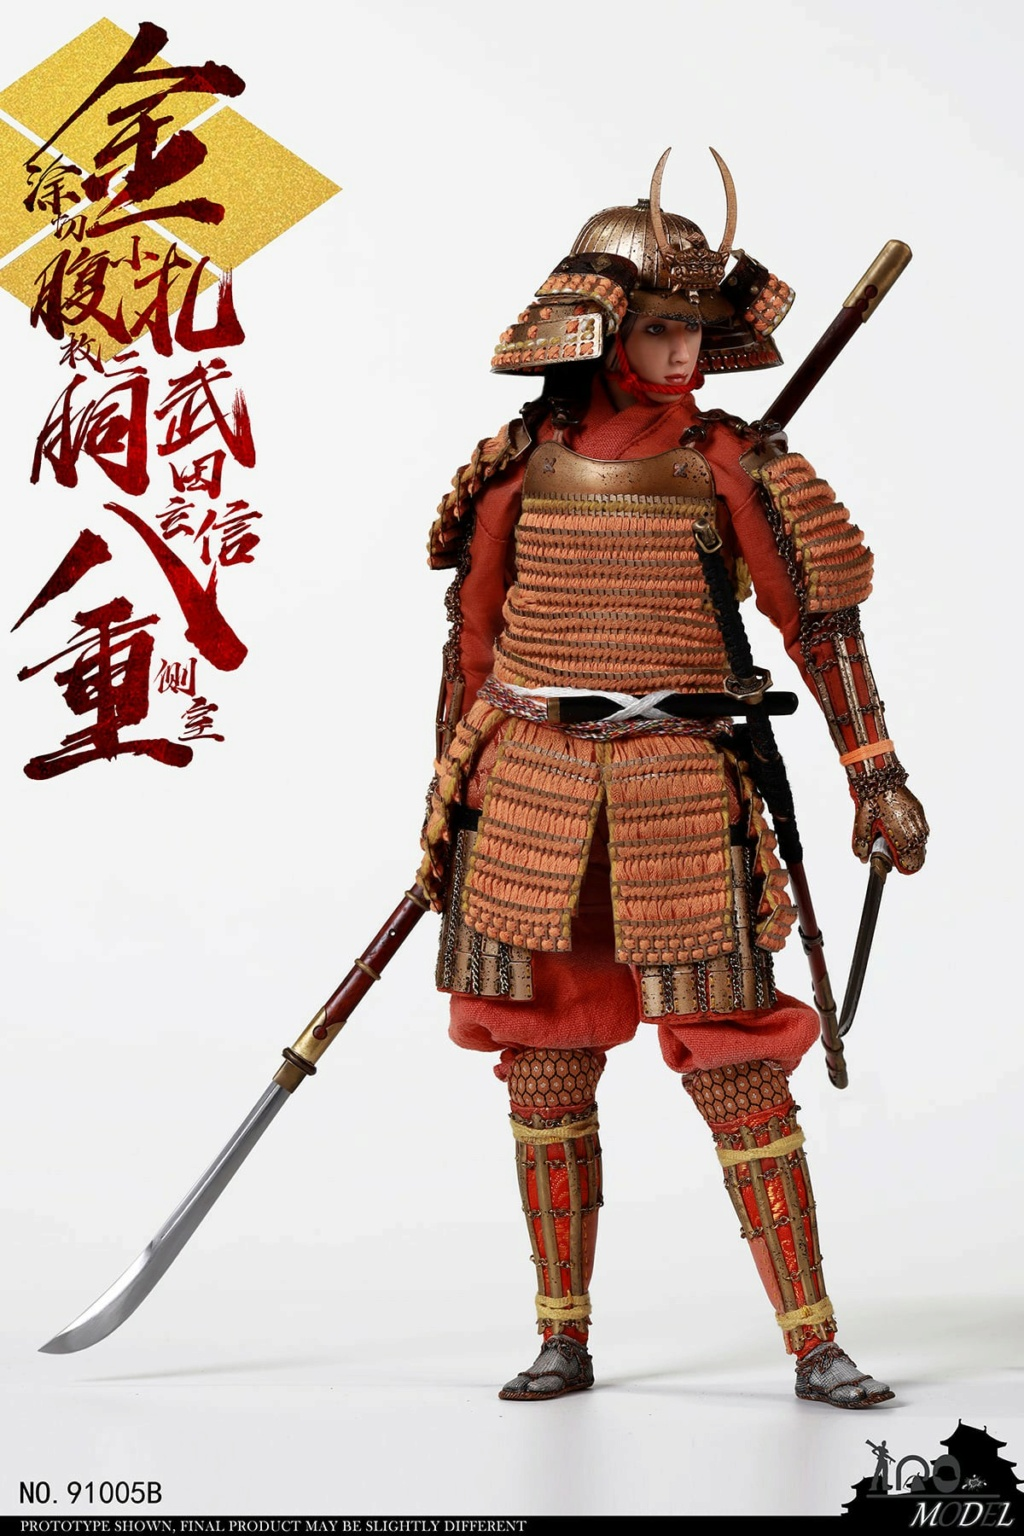 IQOModel - NEW PRODUCT: IQOMODEL: 1/6 [100% full copper] Takeda Shingen's side room with eight heavy gold-coated cuts and two small pieces of carcass NO.91005A/B  16300610